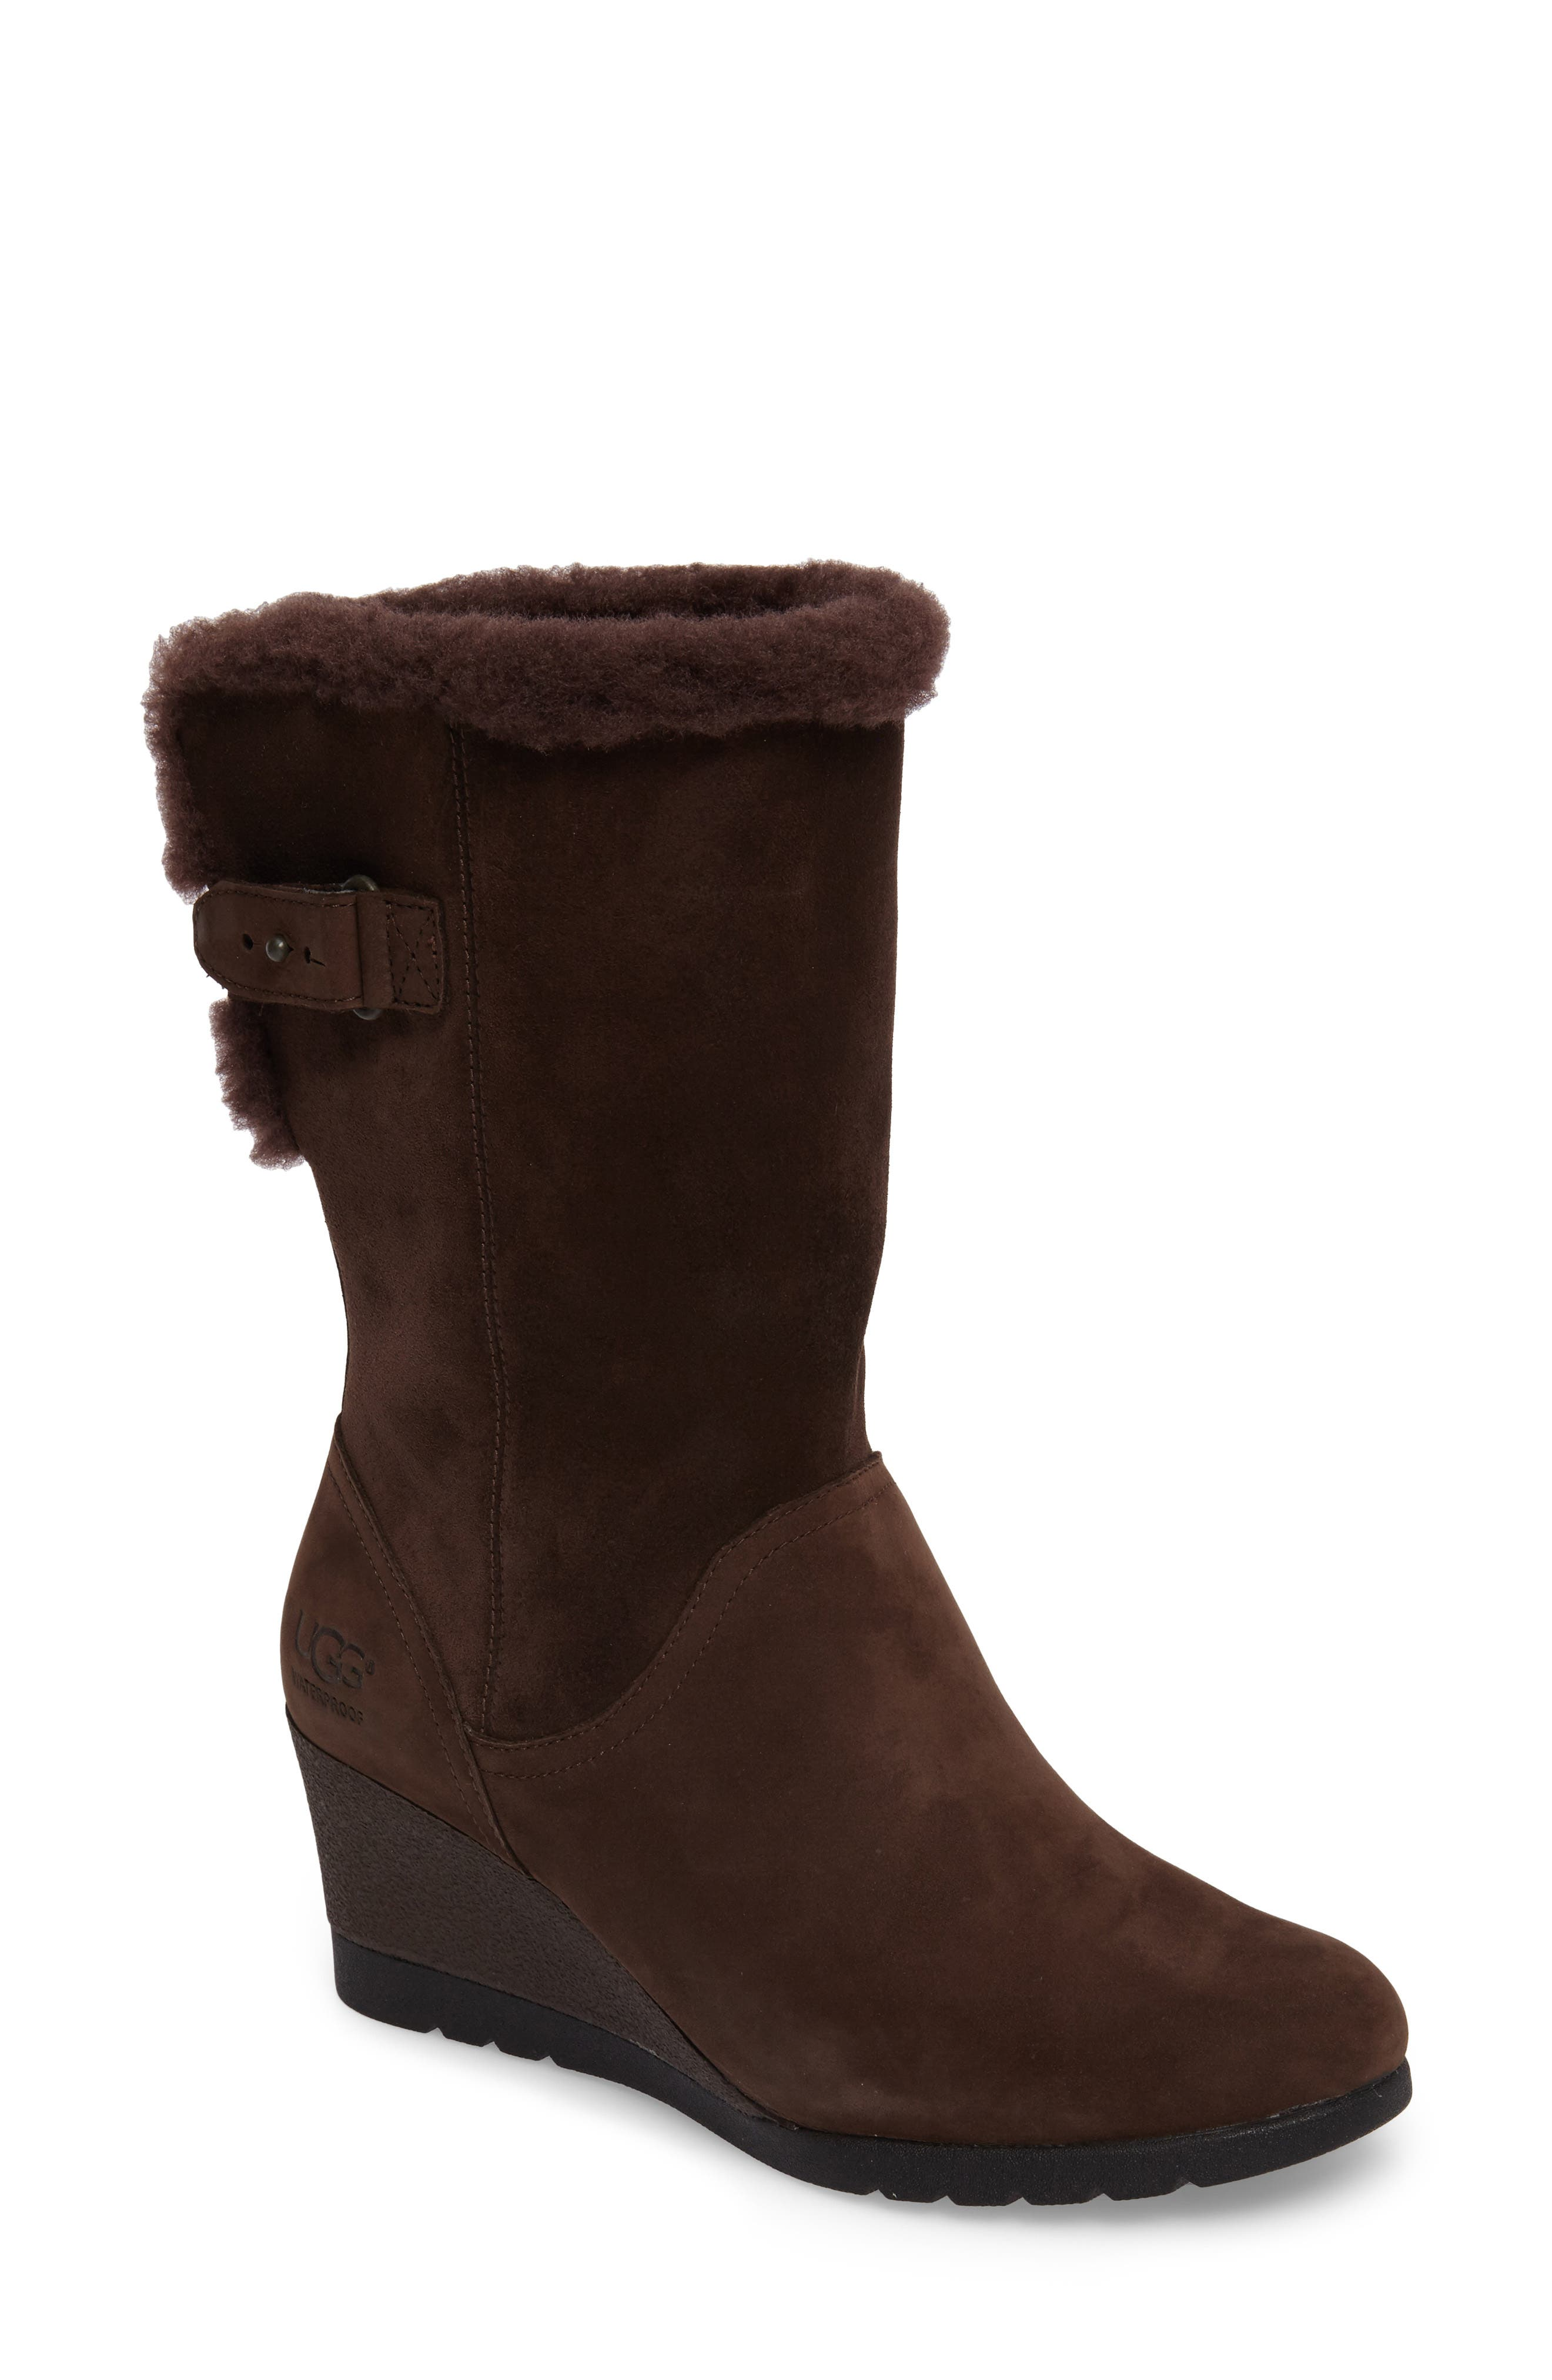 Edelina Waterproof Wedge Boot,                             Main thumbnail 1, color,                             Grizzly Leather